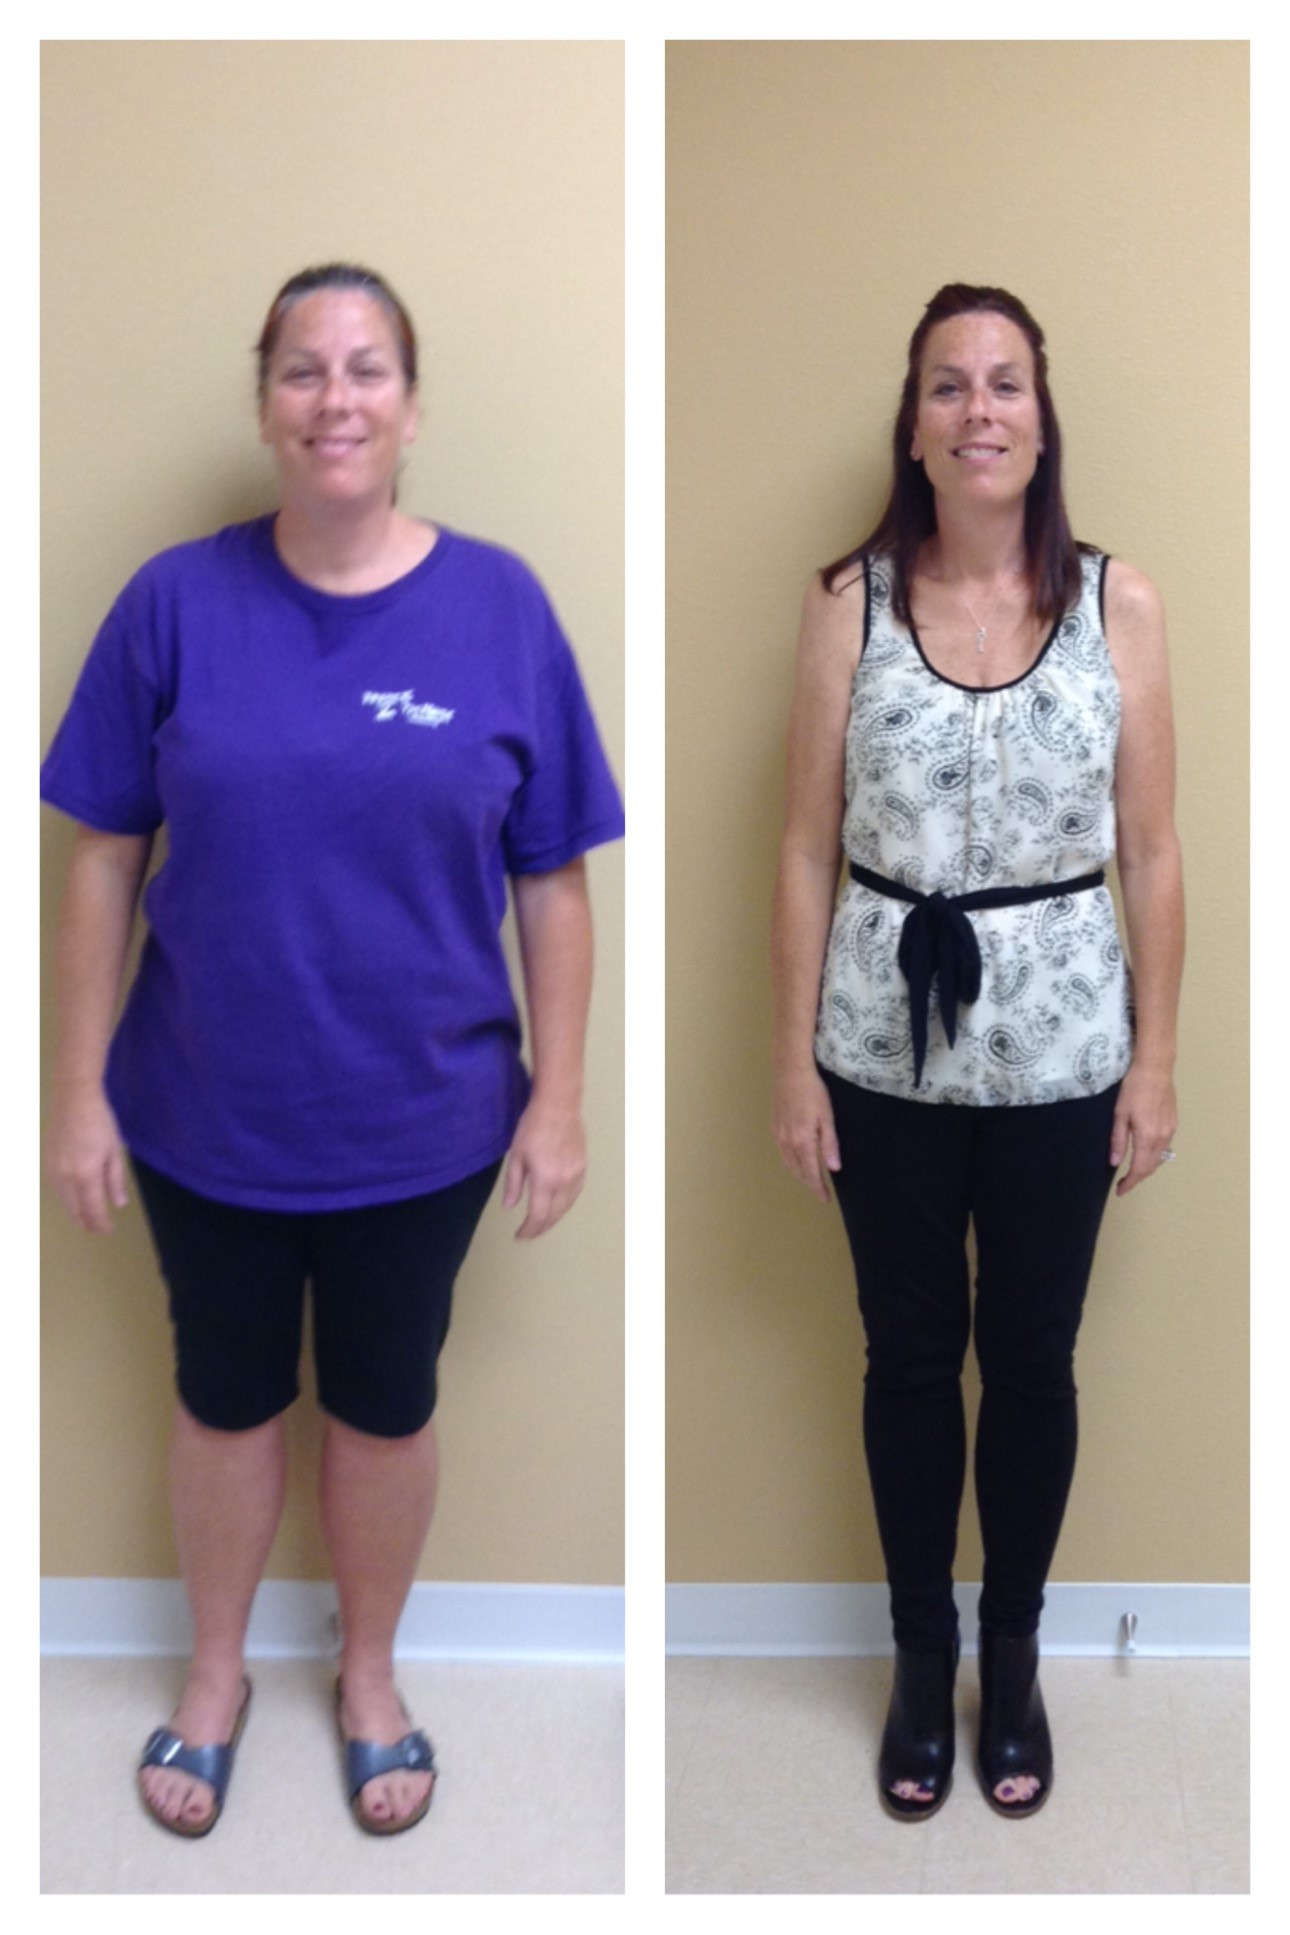 Front Lauranne R 60lbs